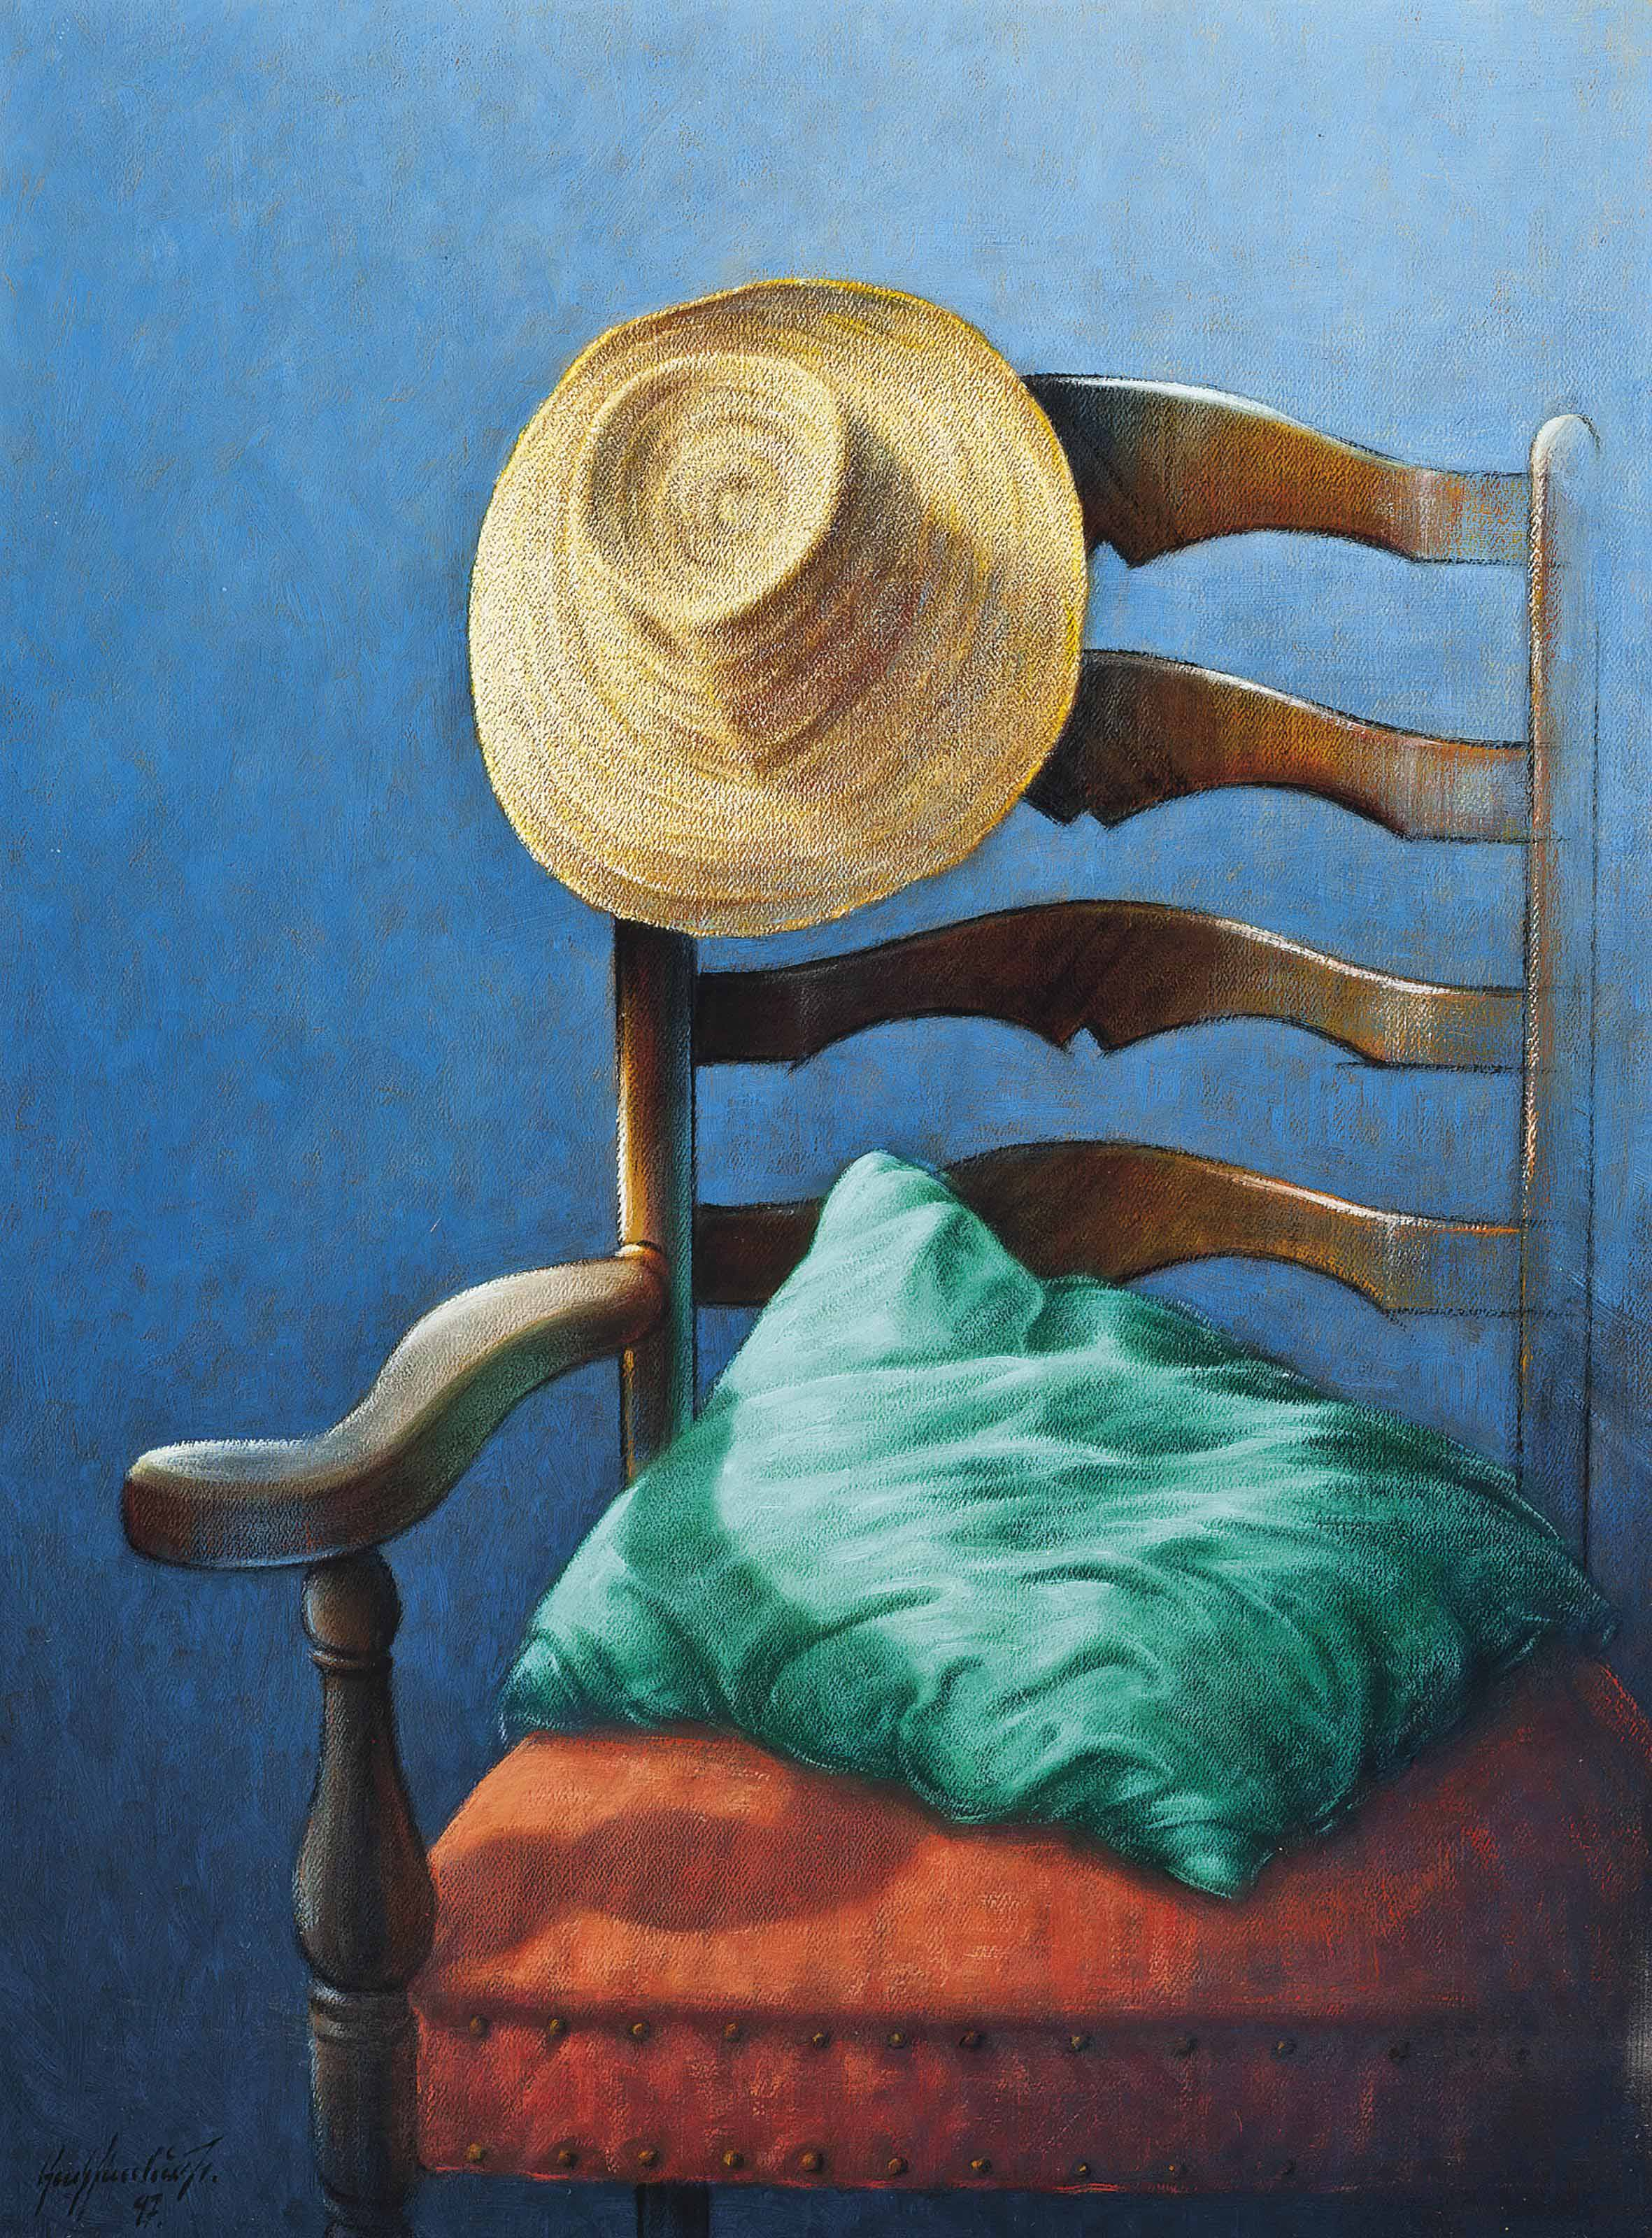 Straw hat and a cushion on a chair